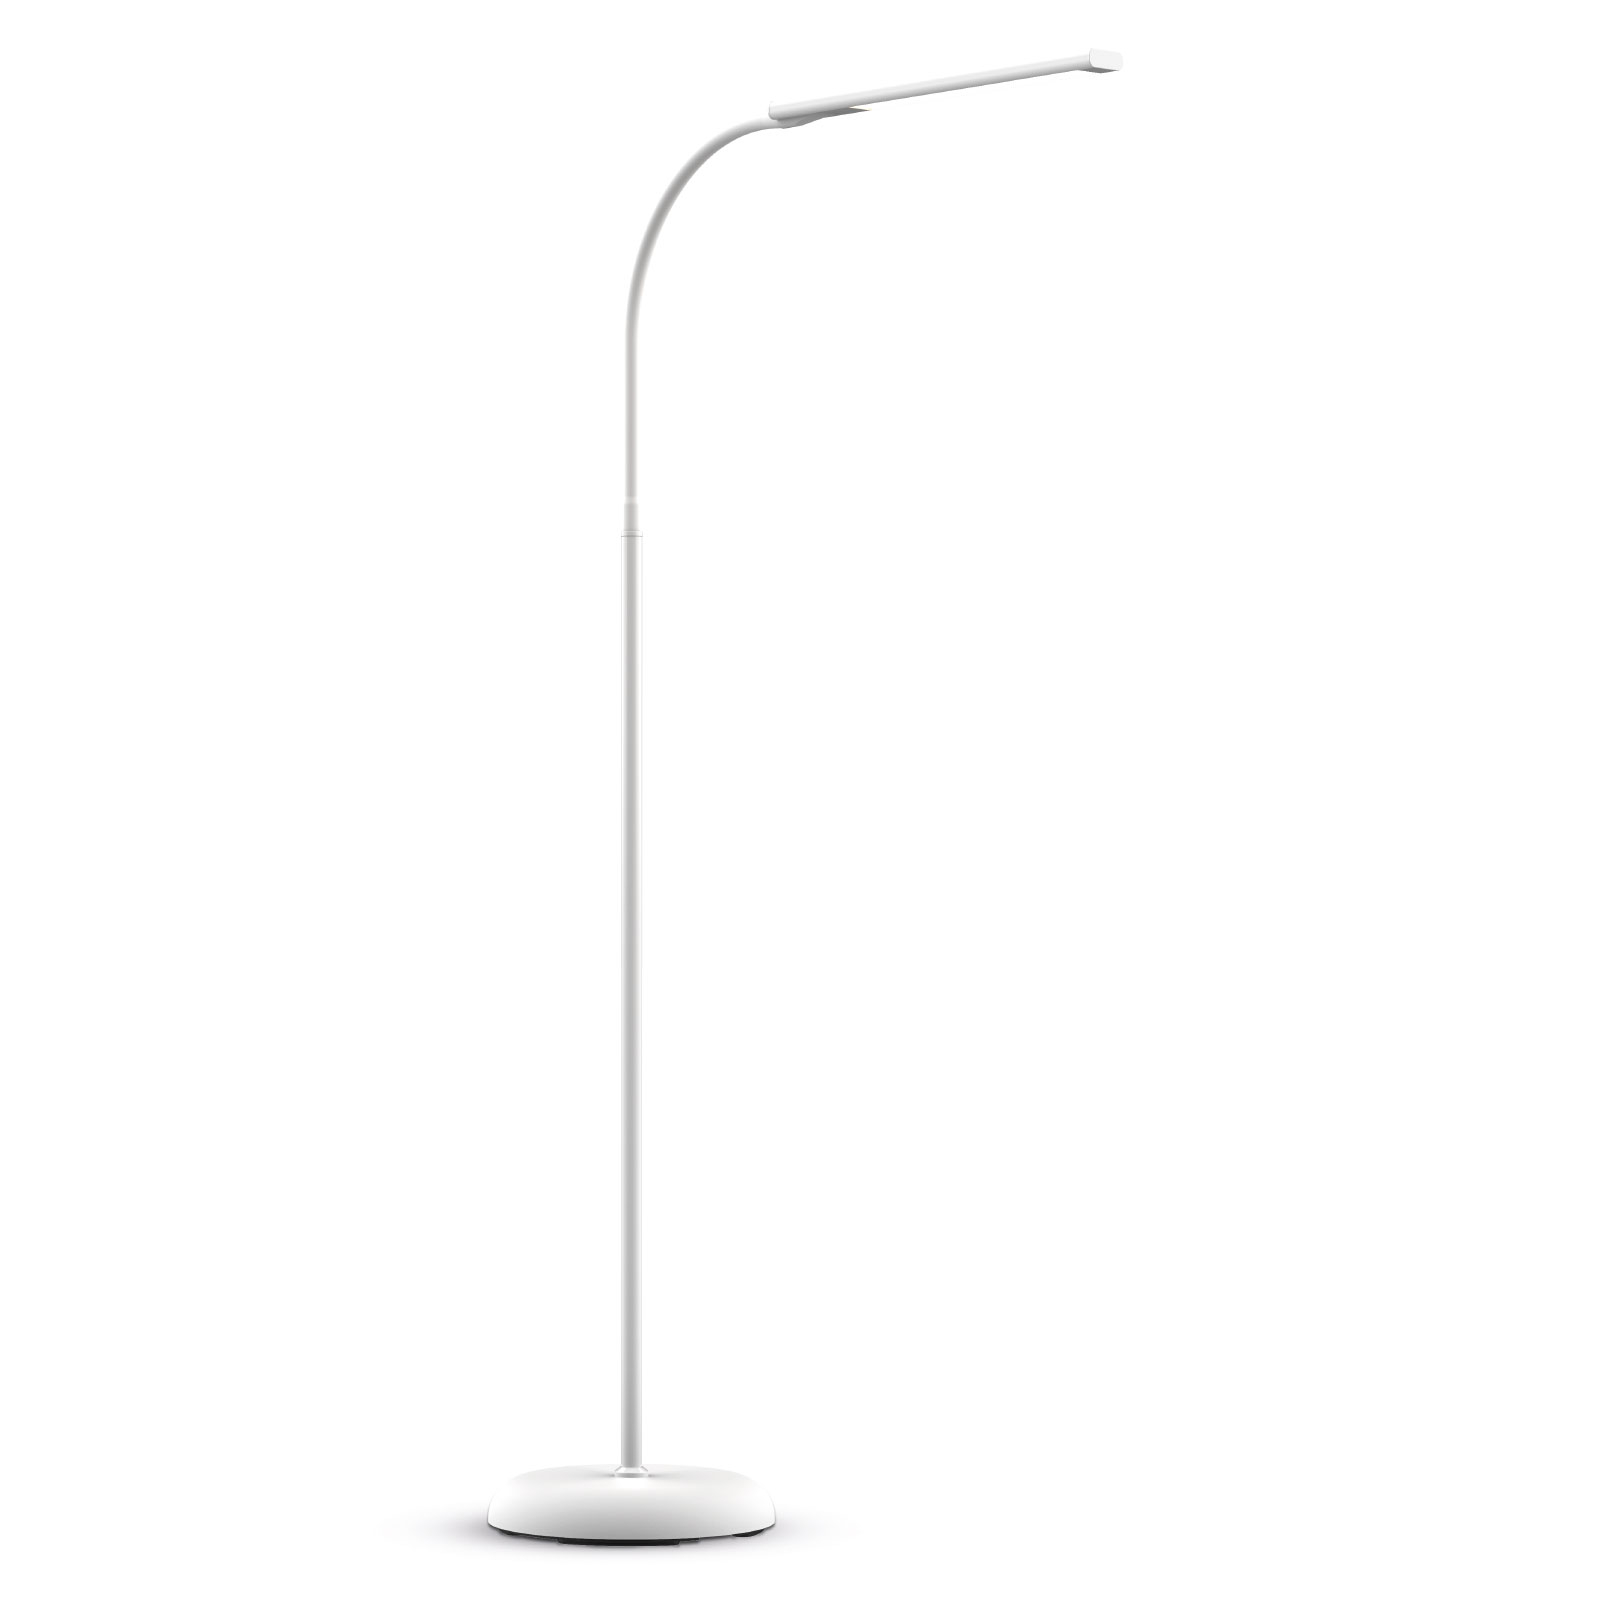 Lampadaire LED MAULpirro dimmable, blanc